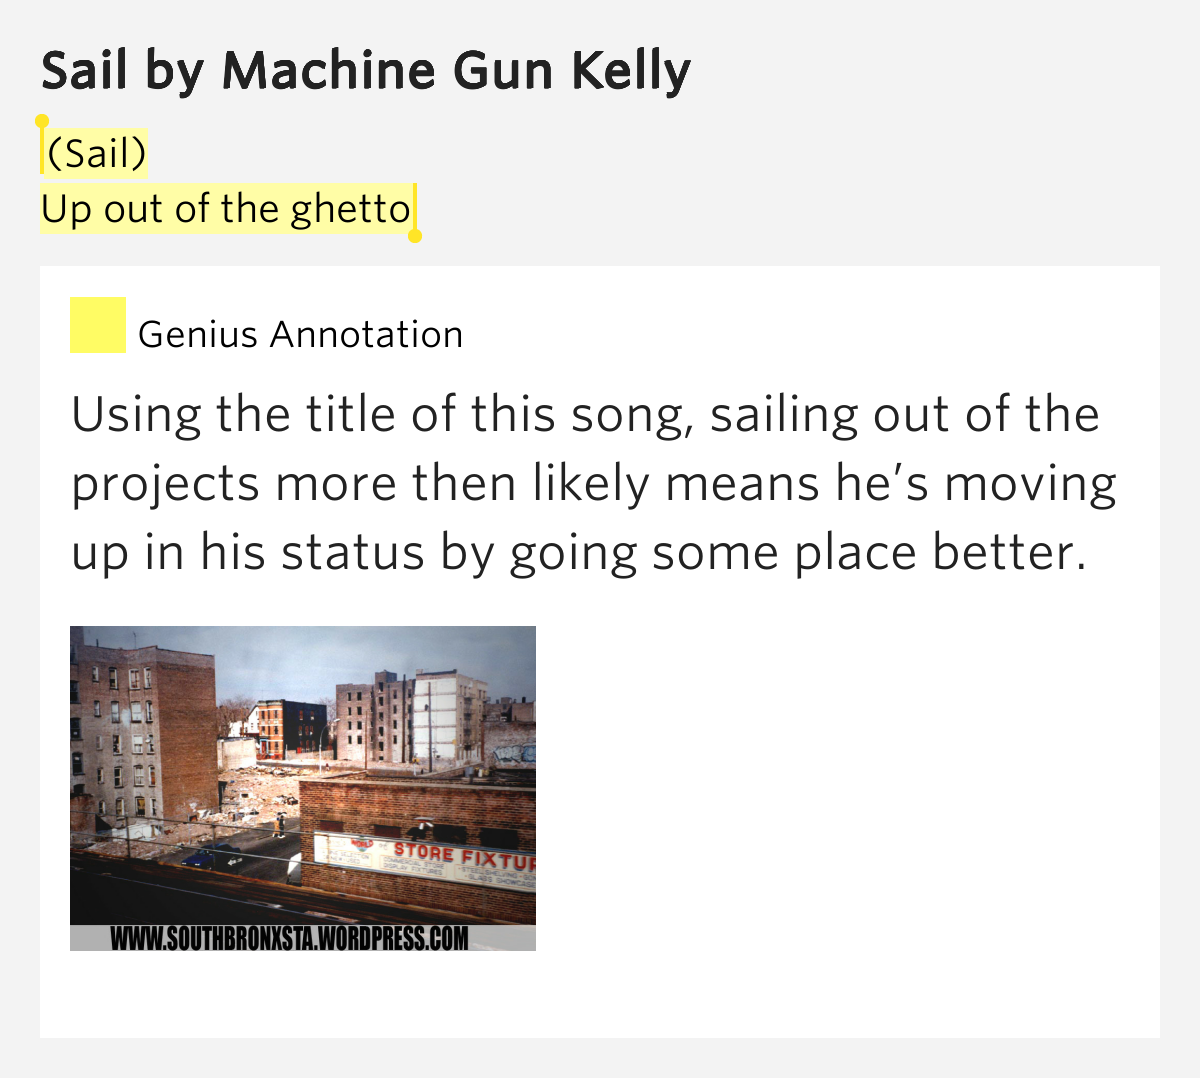 sail machine gun lyrics